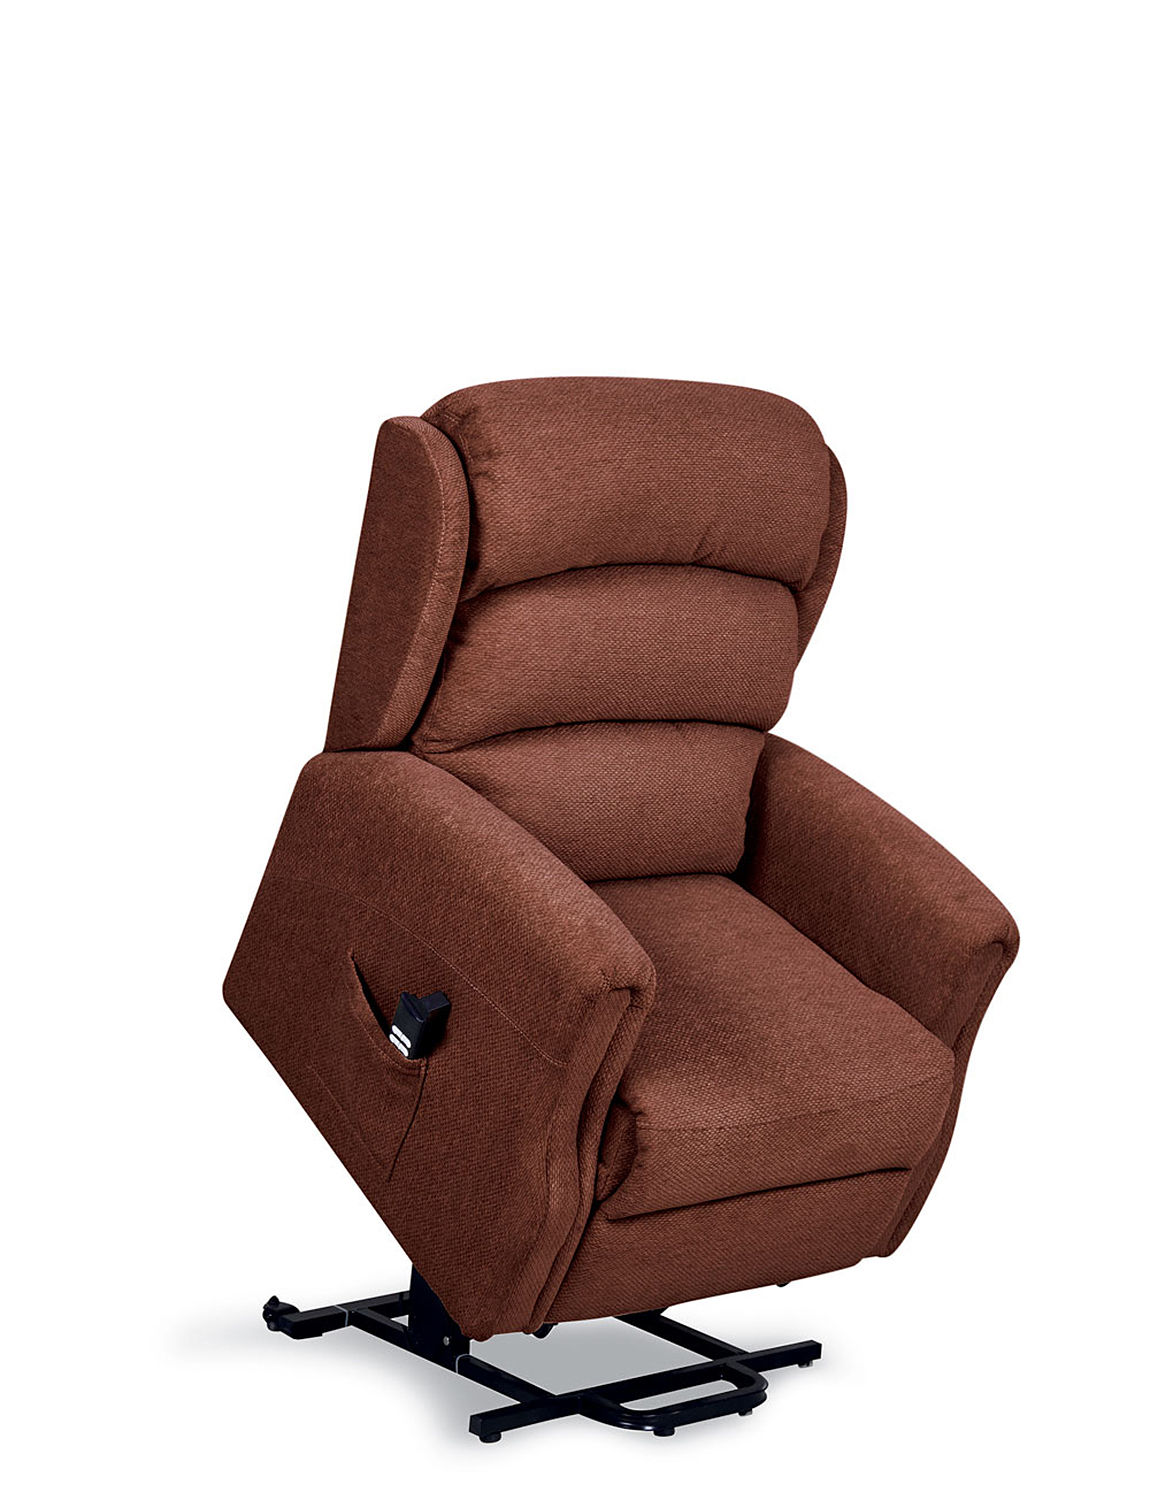 Dual motor rise and recliner chair chums for Dual motor recliner chairs